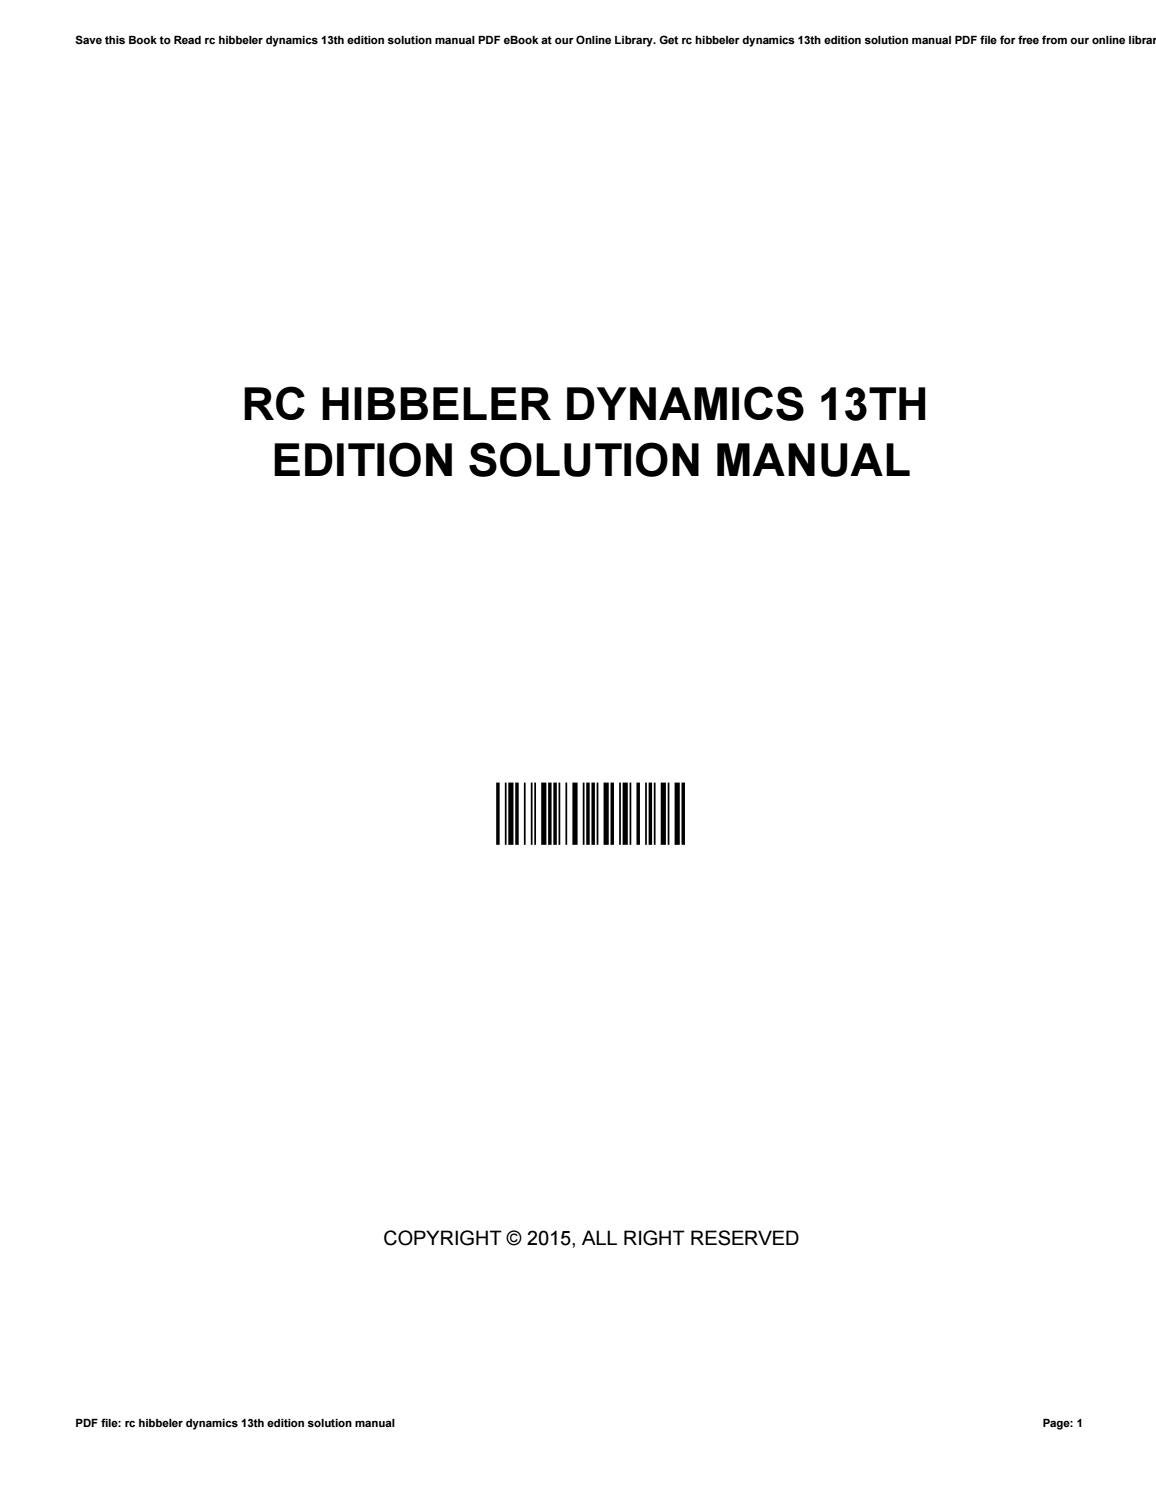 Rc hibbeler dynamics 13th edition solution manual by christina issuu baditri Gallery